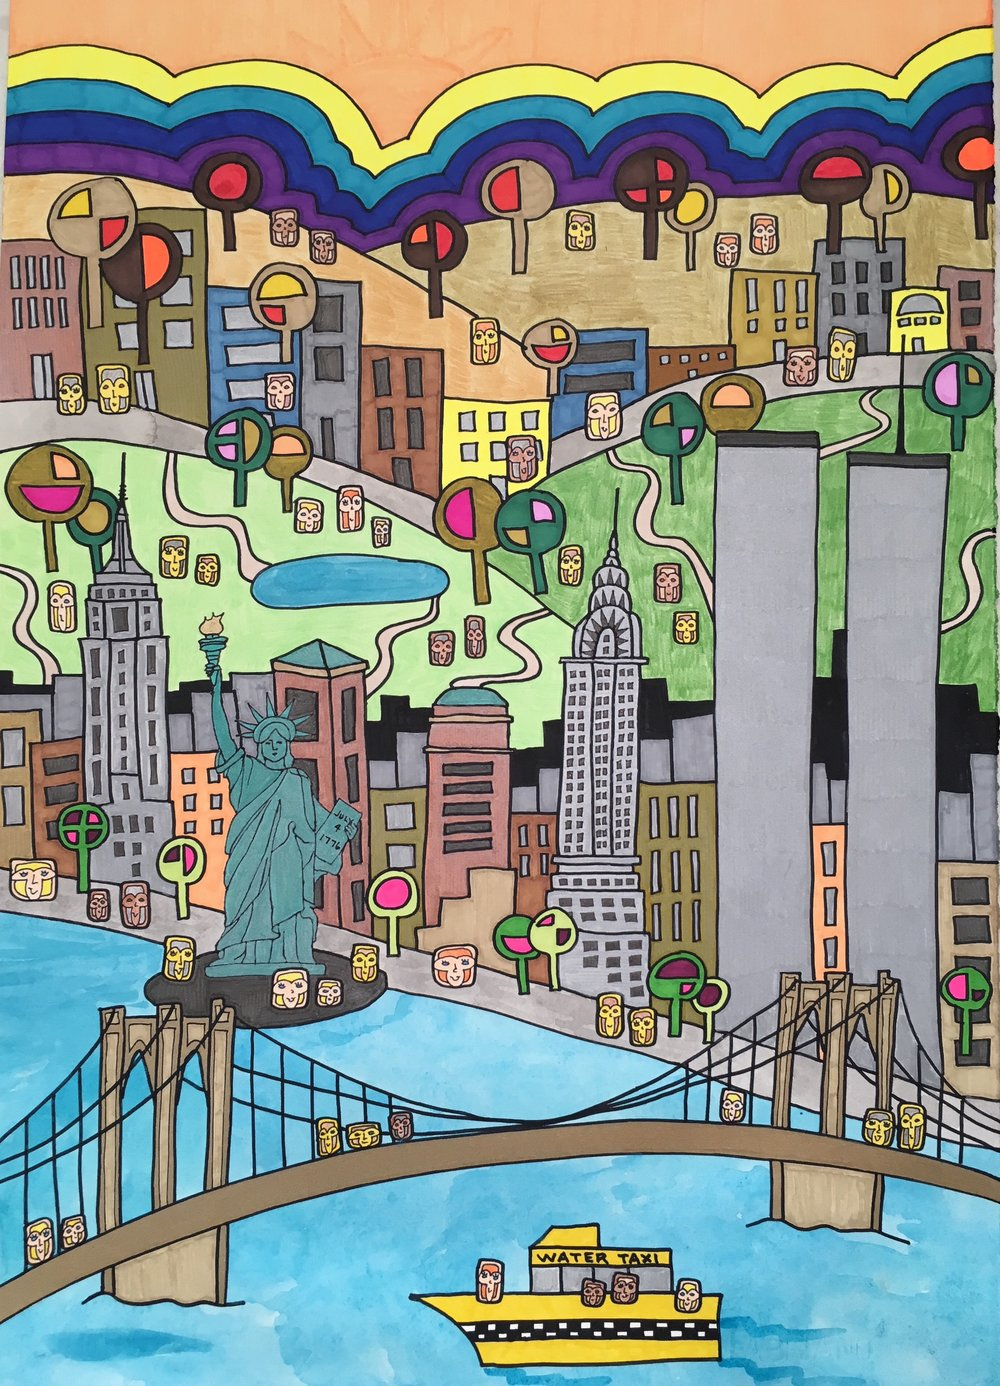 """There's Only One"" - New York through Jenny's eyes. Can you see the jungle in the city?"